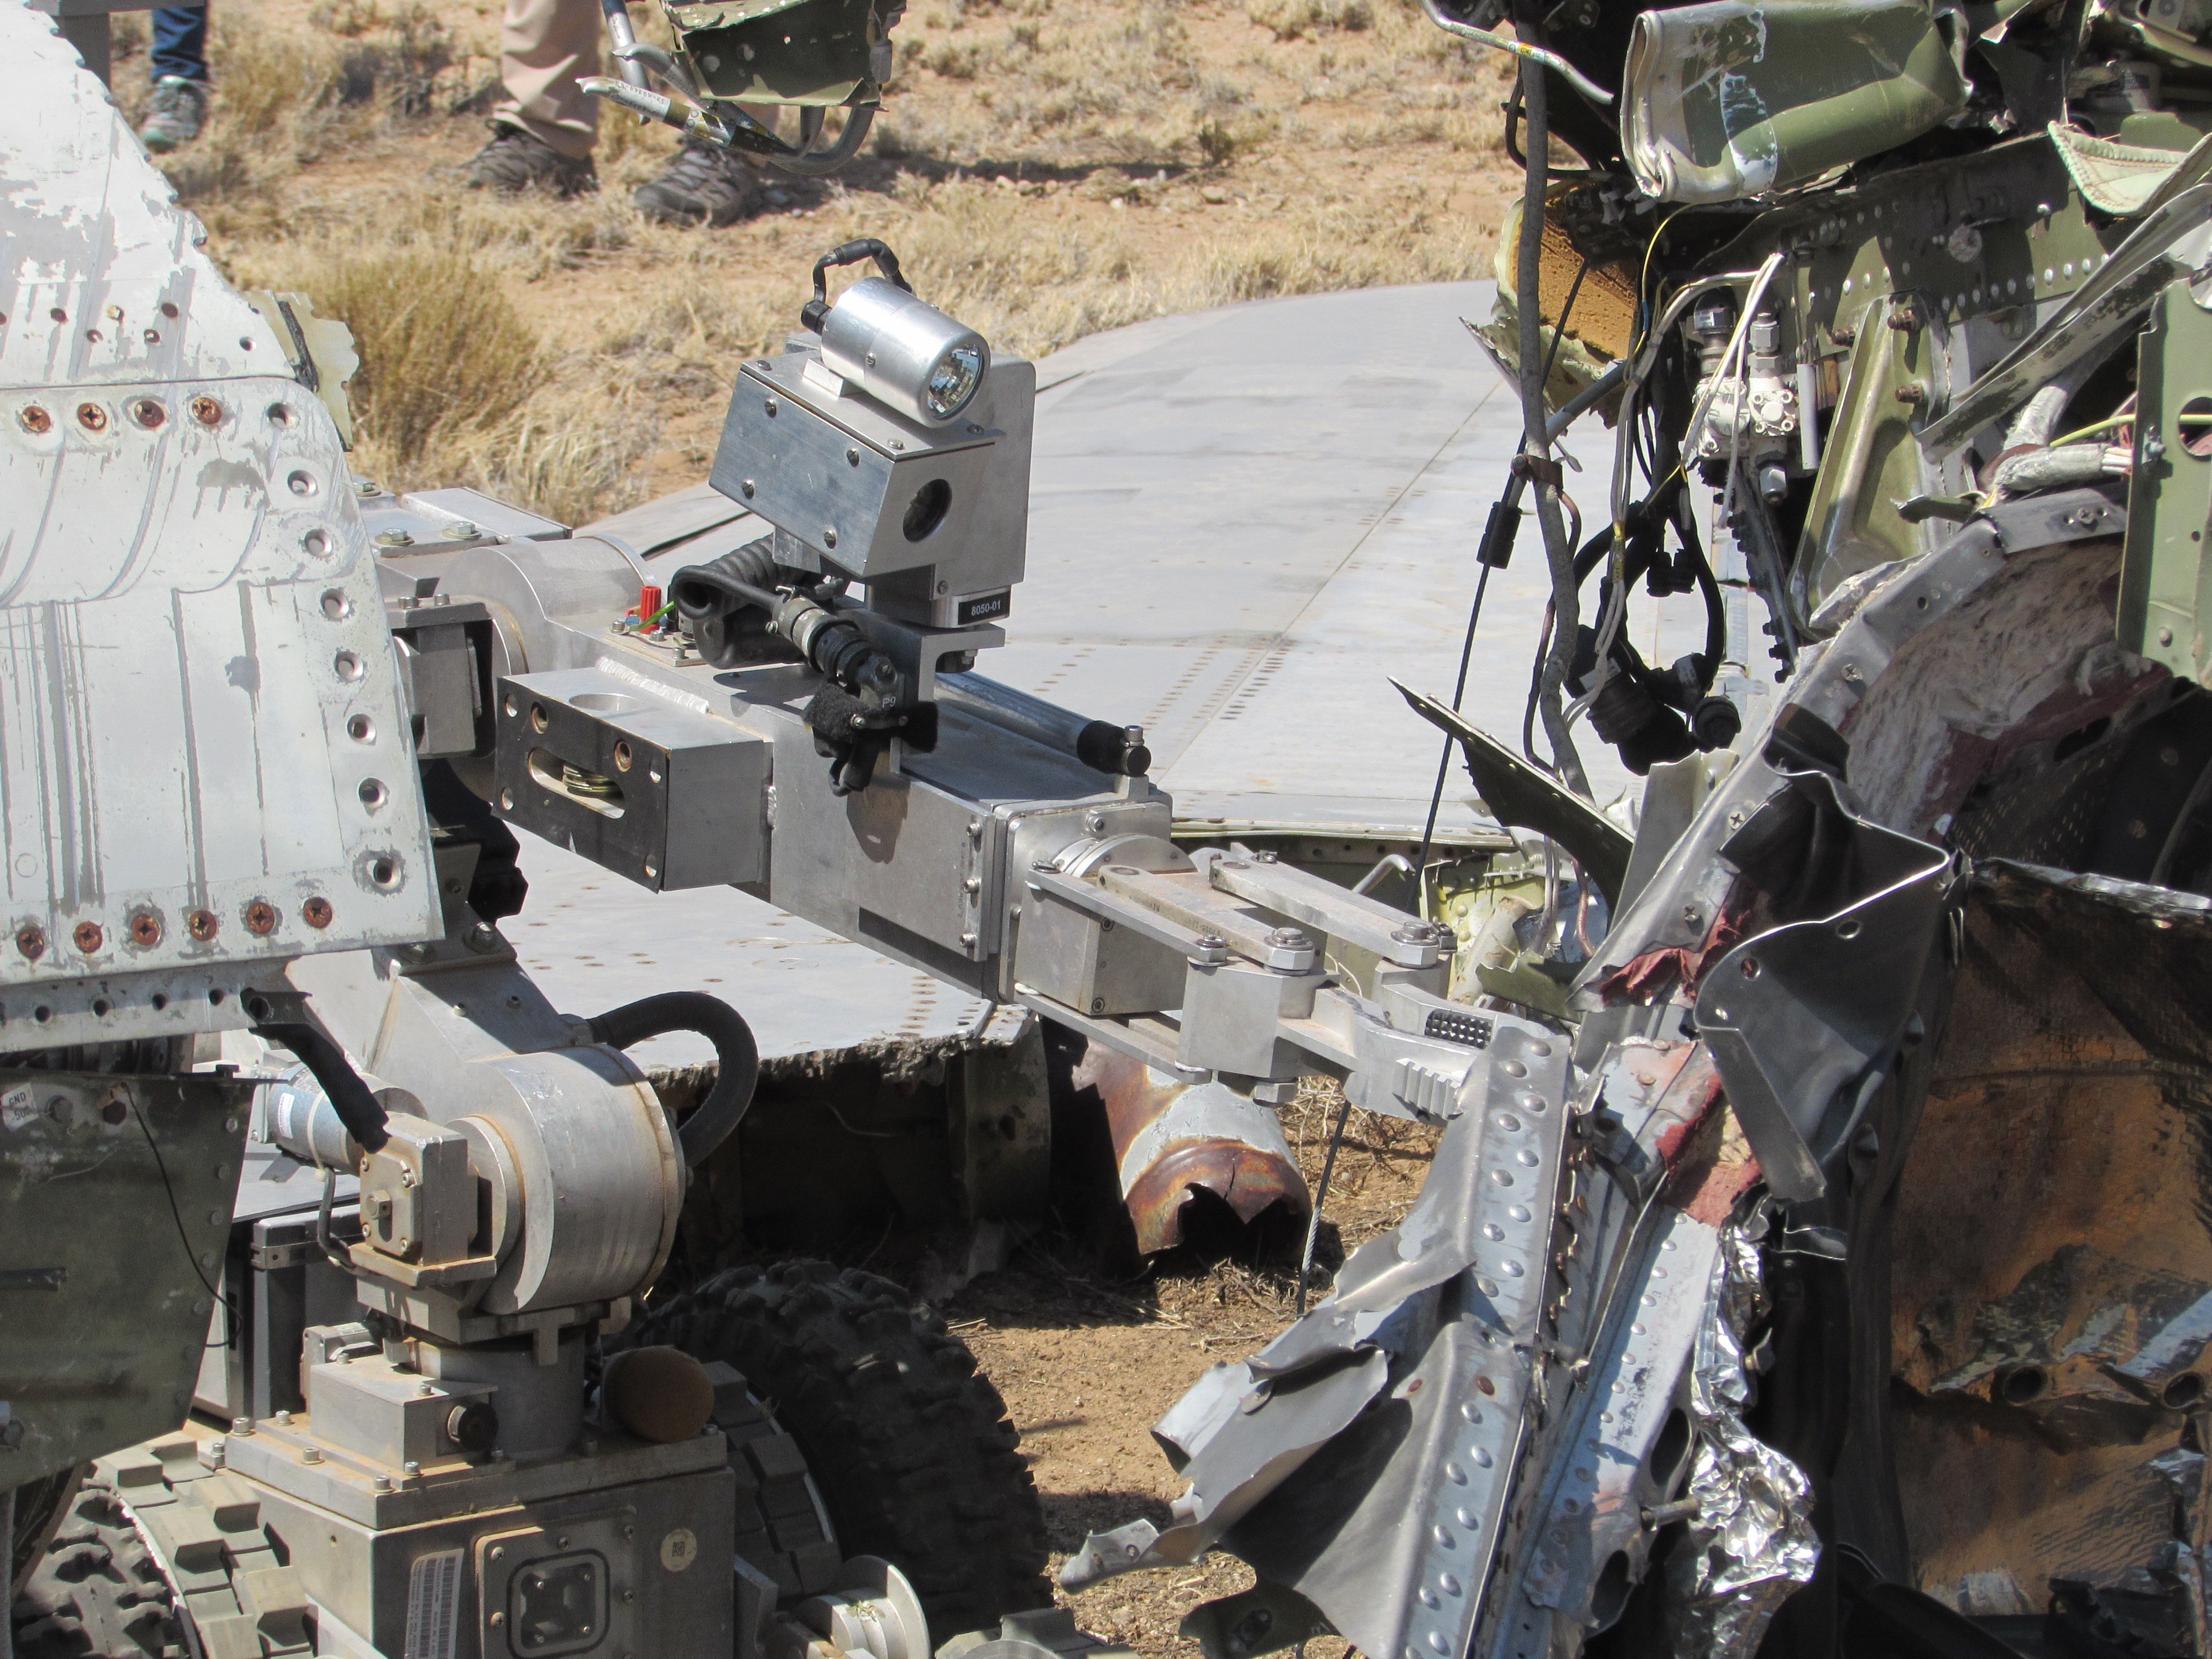 Driving between the two halves of the wrecked plane, the robot pokes around for clues about suspected mock explosives. (Kelsey D. Atherton)